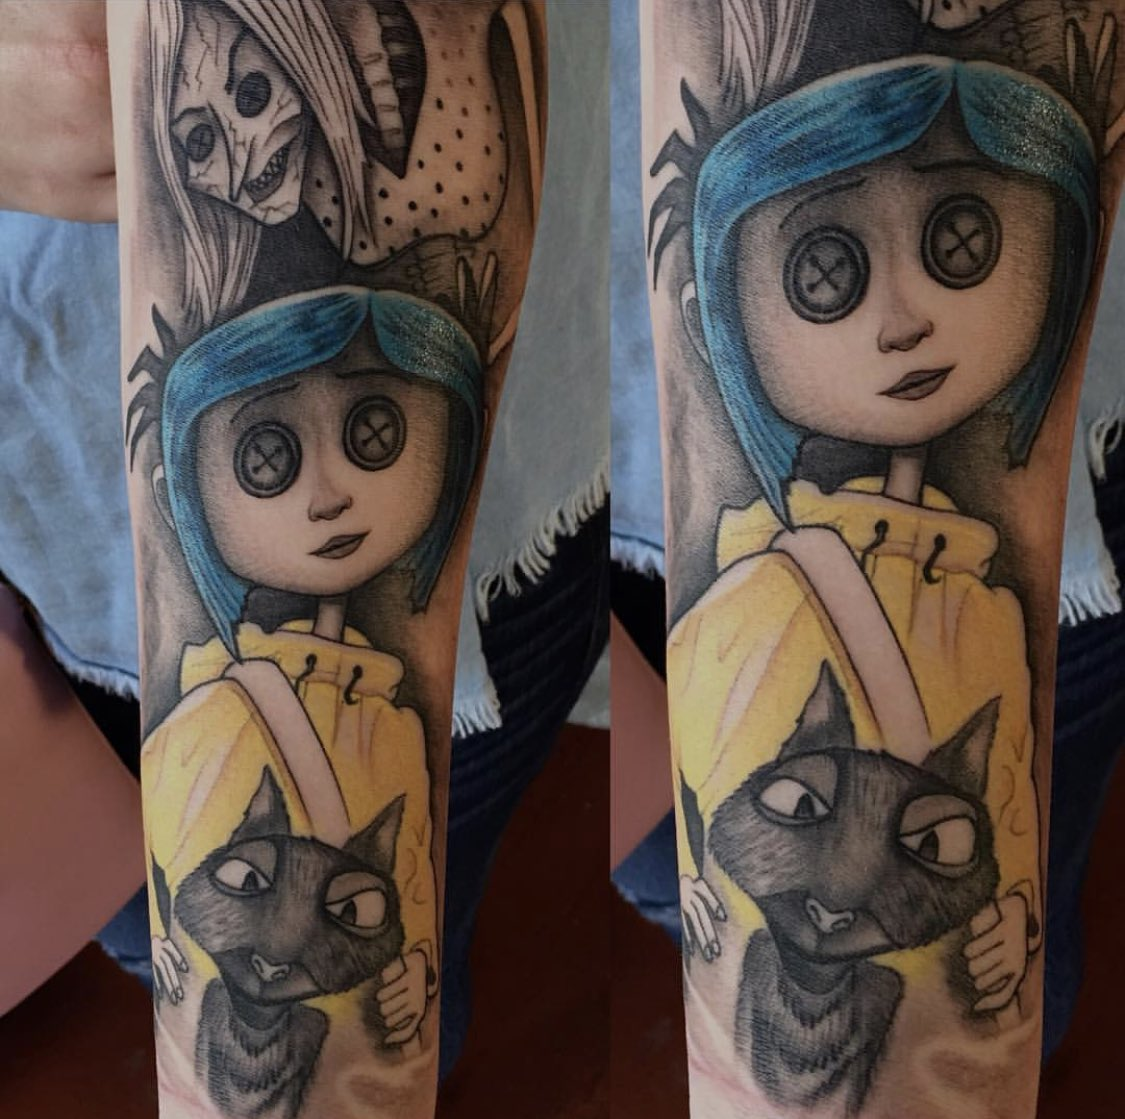 Laika On Twitter Other Mother S Dream Has Come True Coraline Is Wearing Button Eyes Shudder Thanks To Papadingtattoo Via Instagram For This Deliciously Creepy Bodyart Inktober Fanart Https T Co Z71yhzgpgu